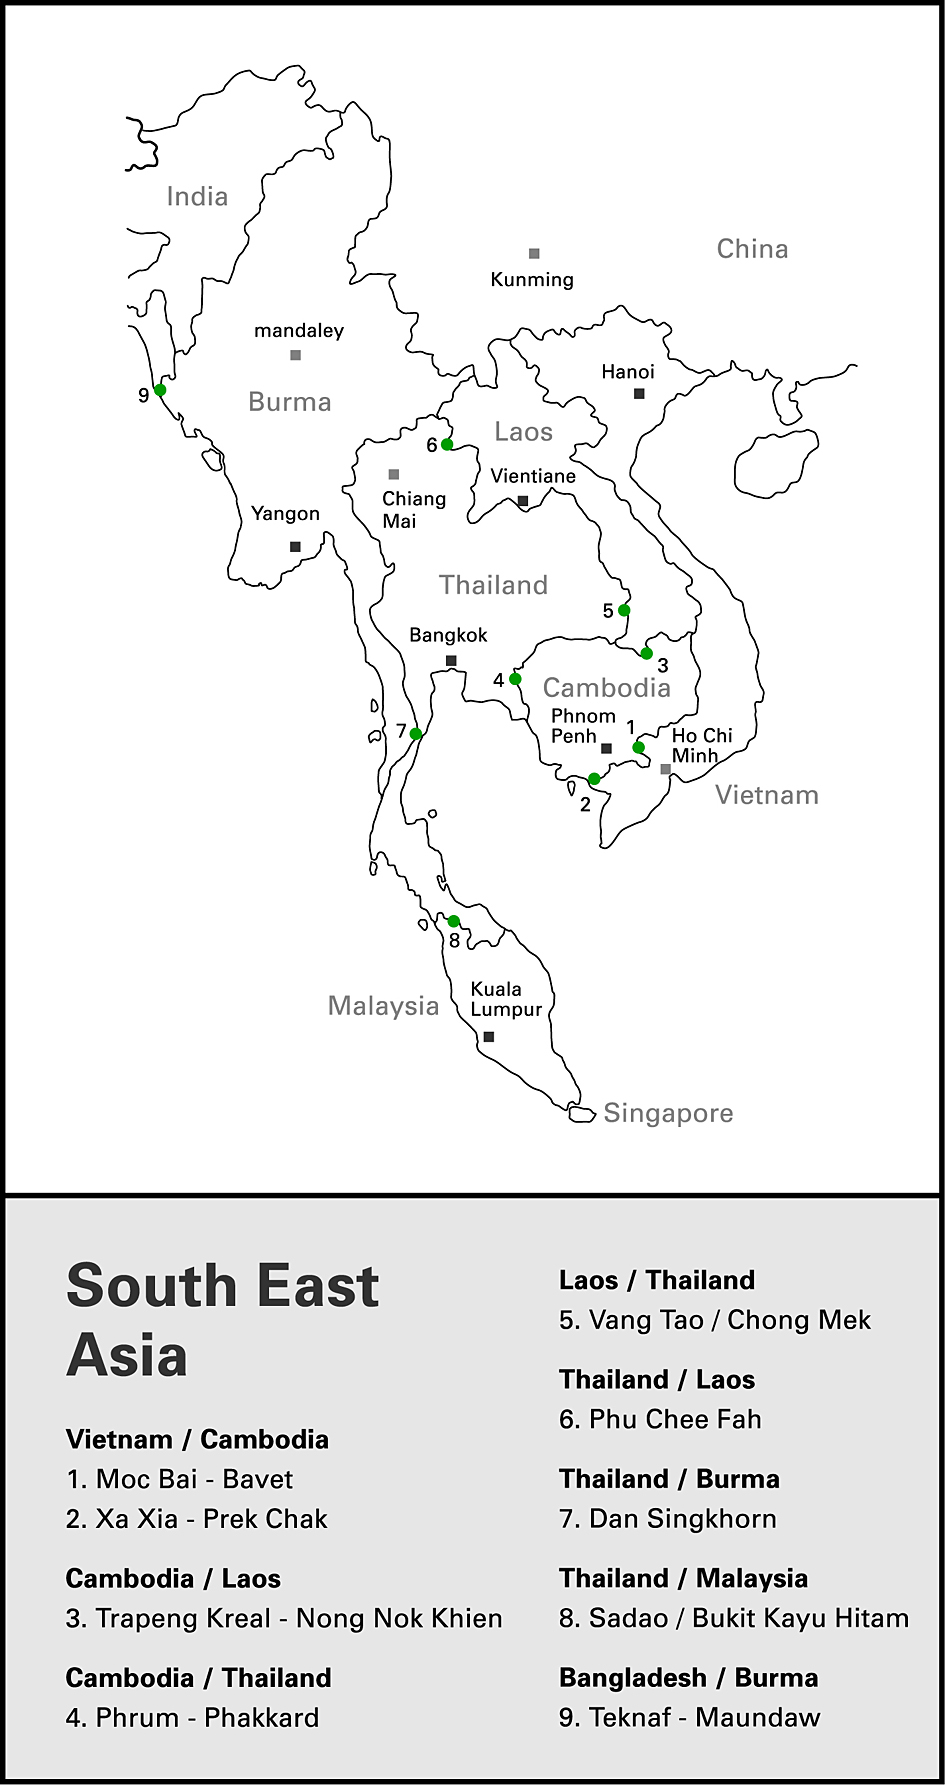 map-border-SouthEast-asia-2011.jpg